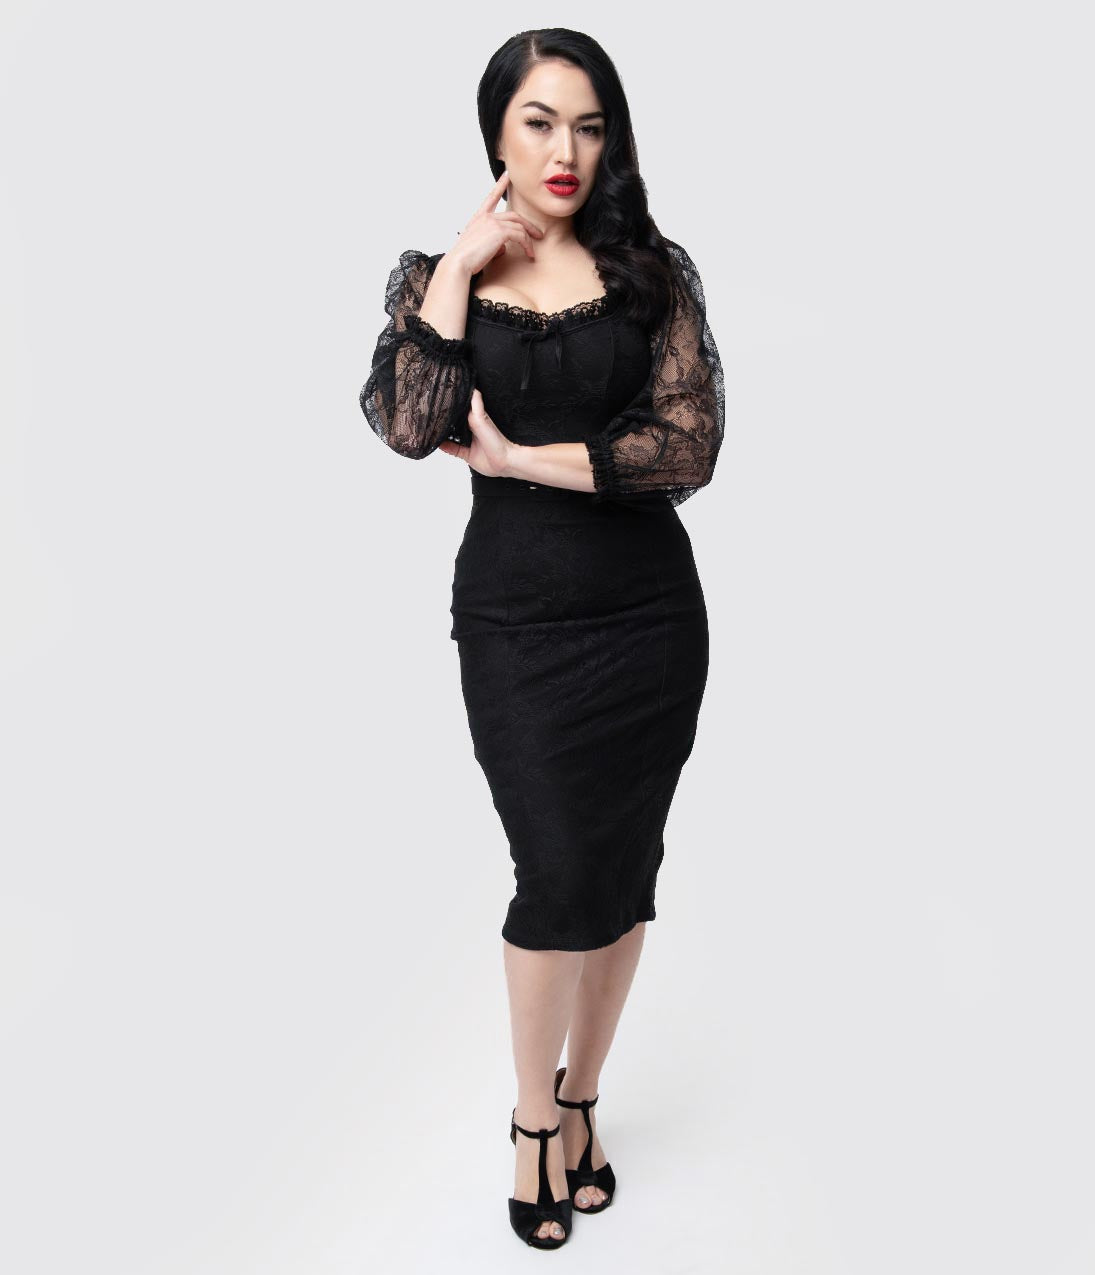 Vintage Evening Dresses and Formal Evening Gowns Vixen By Micheline Pitt Black Lace Decadence Wiggle Dress $166.00 AT vintagedancer.com